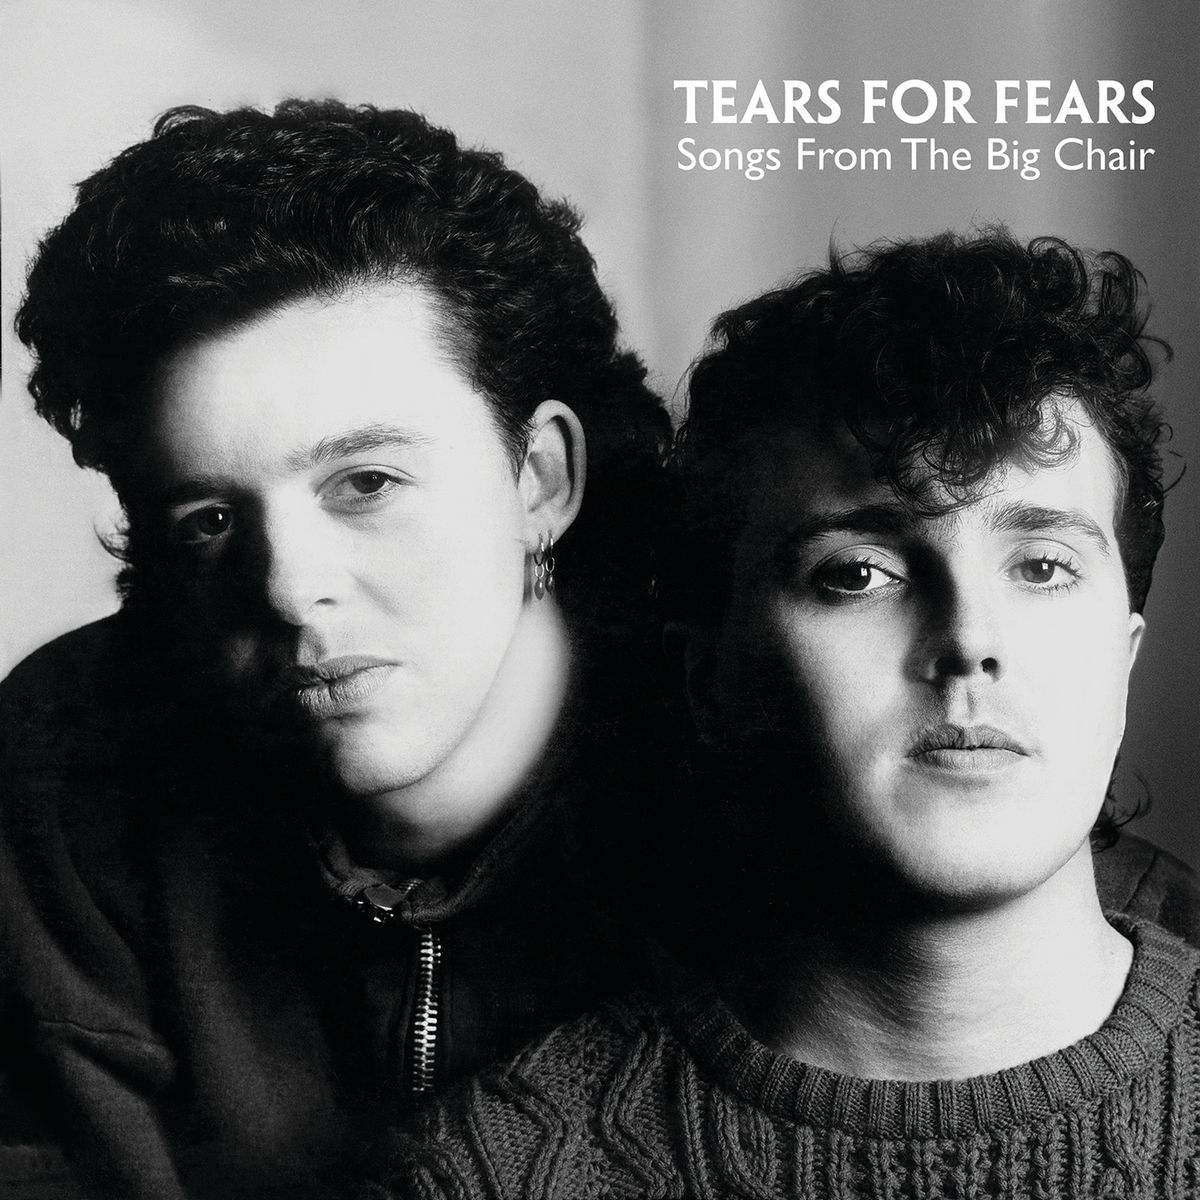 Tears for Fears-Songs From the Big Chair (Super Deluxe Version)